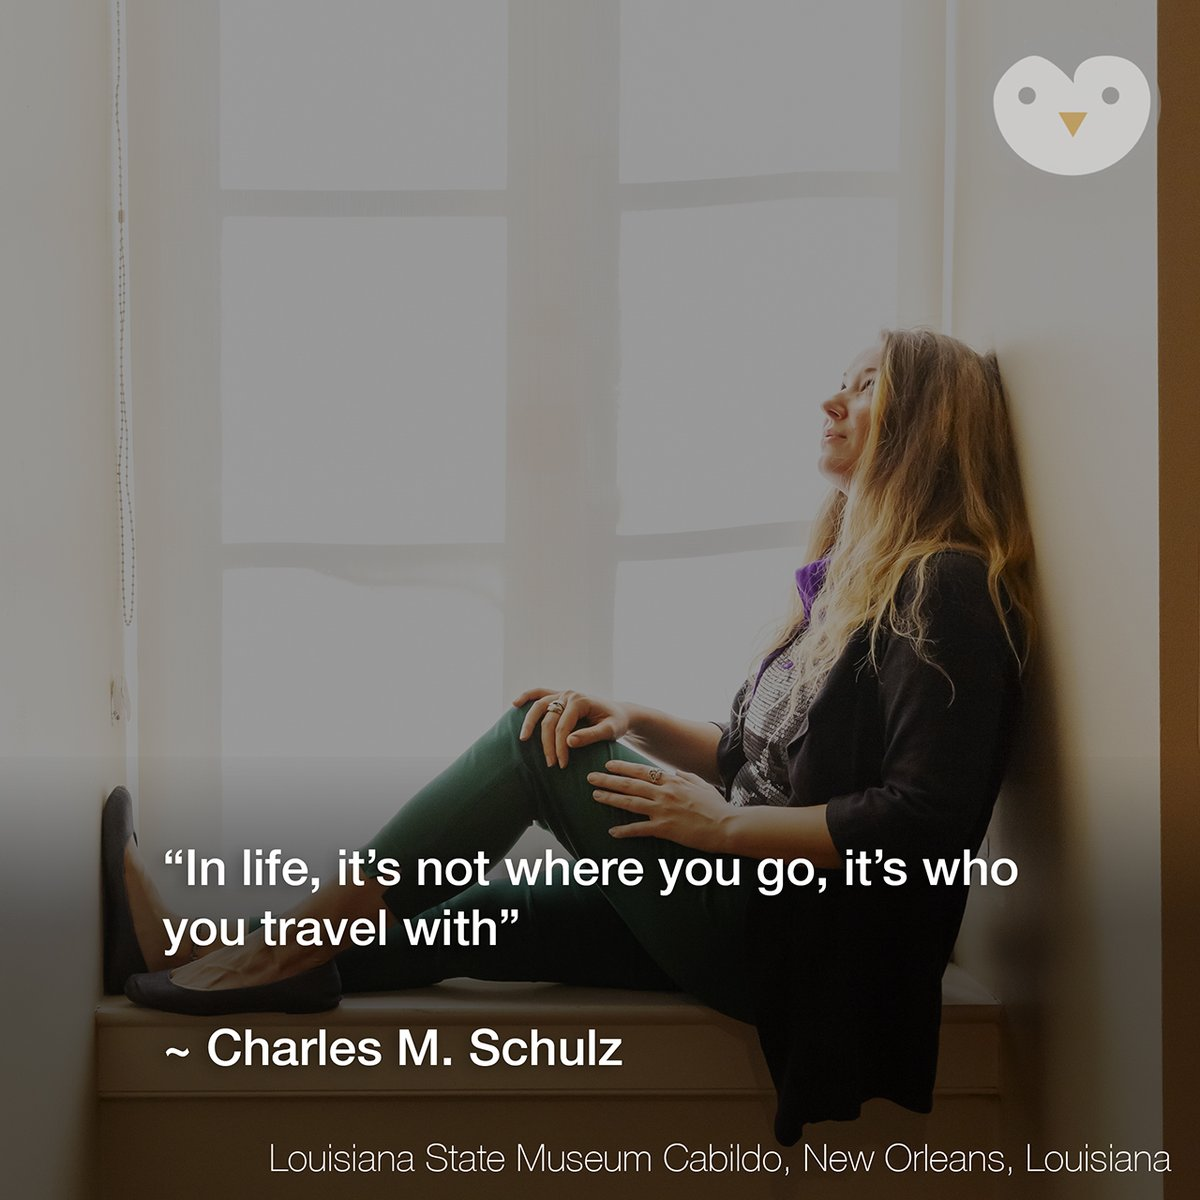 """""""In life, it's not where you go, it's who you travel with"""" ~ Charles M. Schulz #travelquote #traveler #sojournofapenguin  #charlesmschulz #neworleans #cabildo #louisianastatemuseum #louisiana  #travel #travelphotography #travelphotographer #travelblogger #travelgram"""